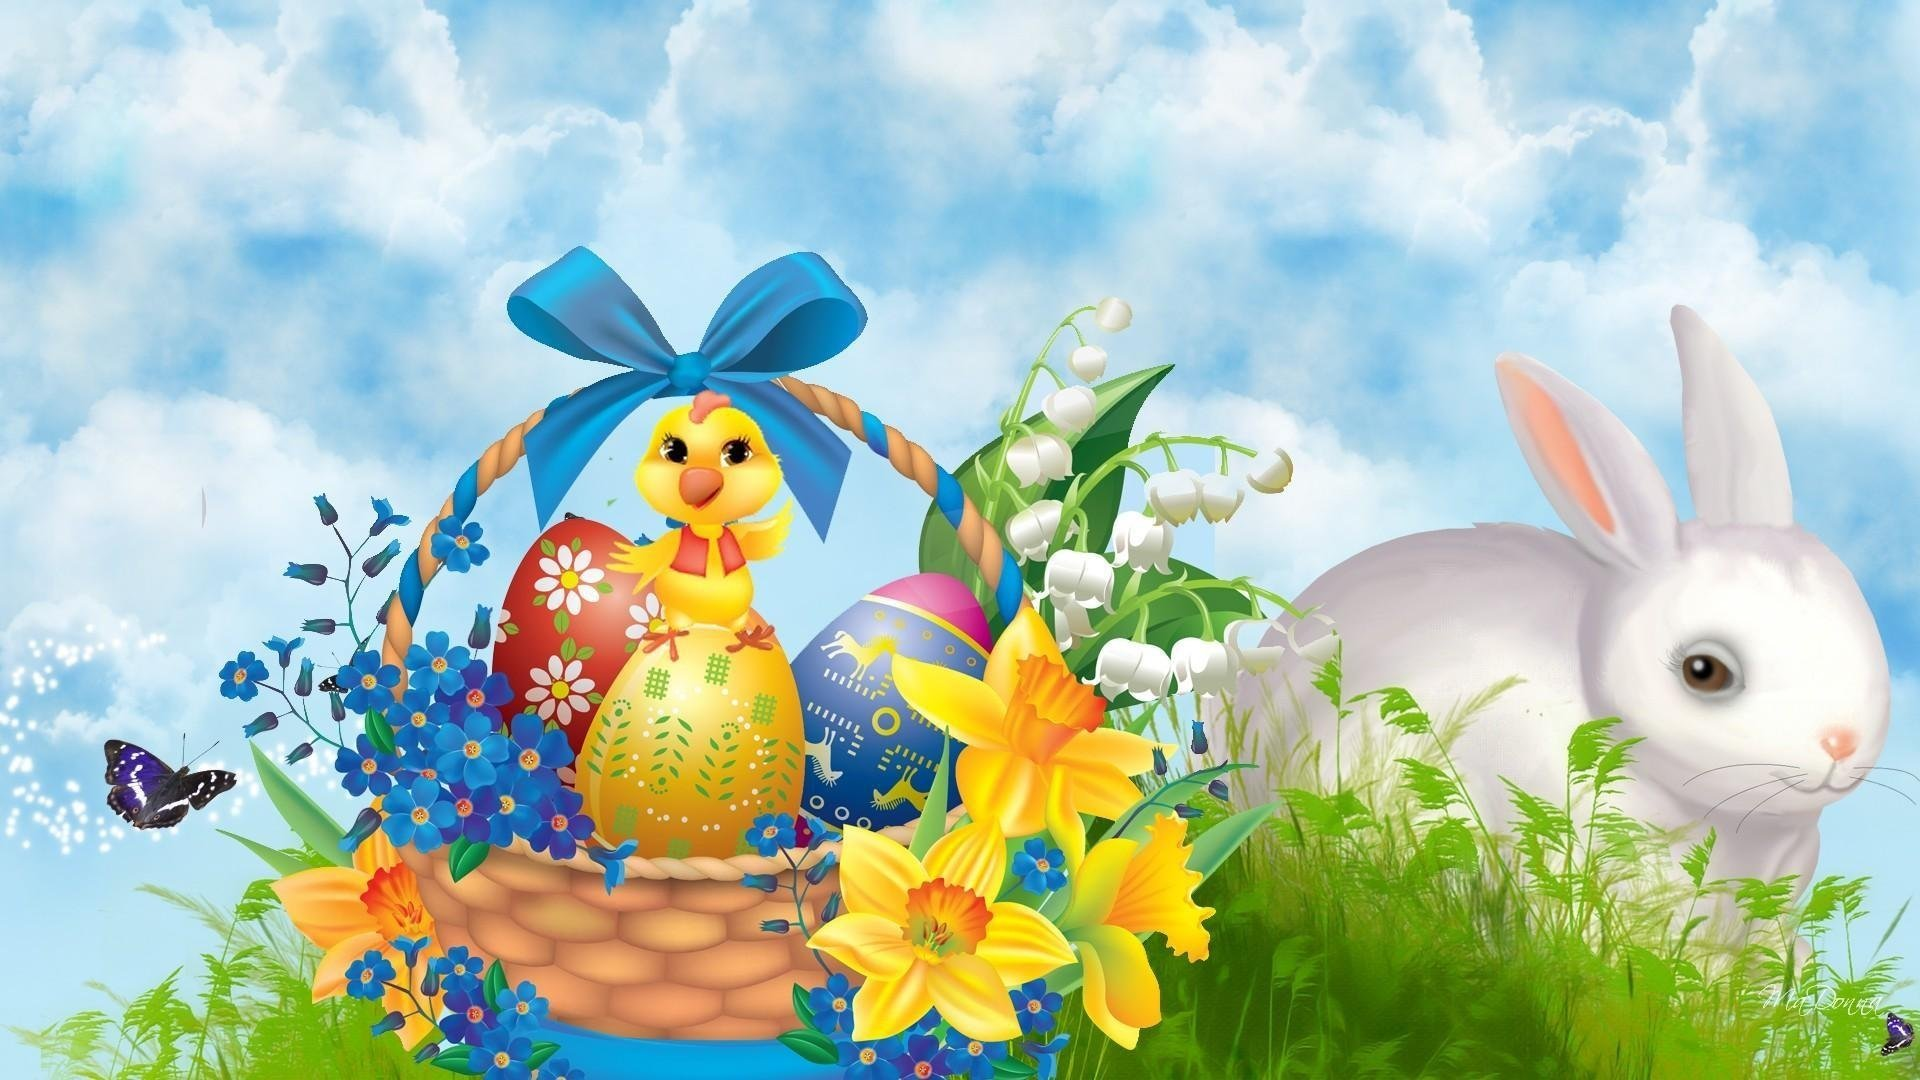 Holiday - Easter  Holiday Bunny Chick Basket Easter Egg Grass Wallpaper